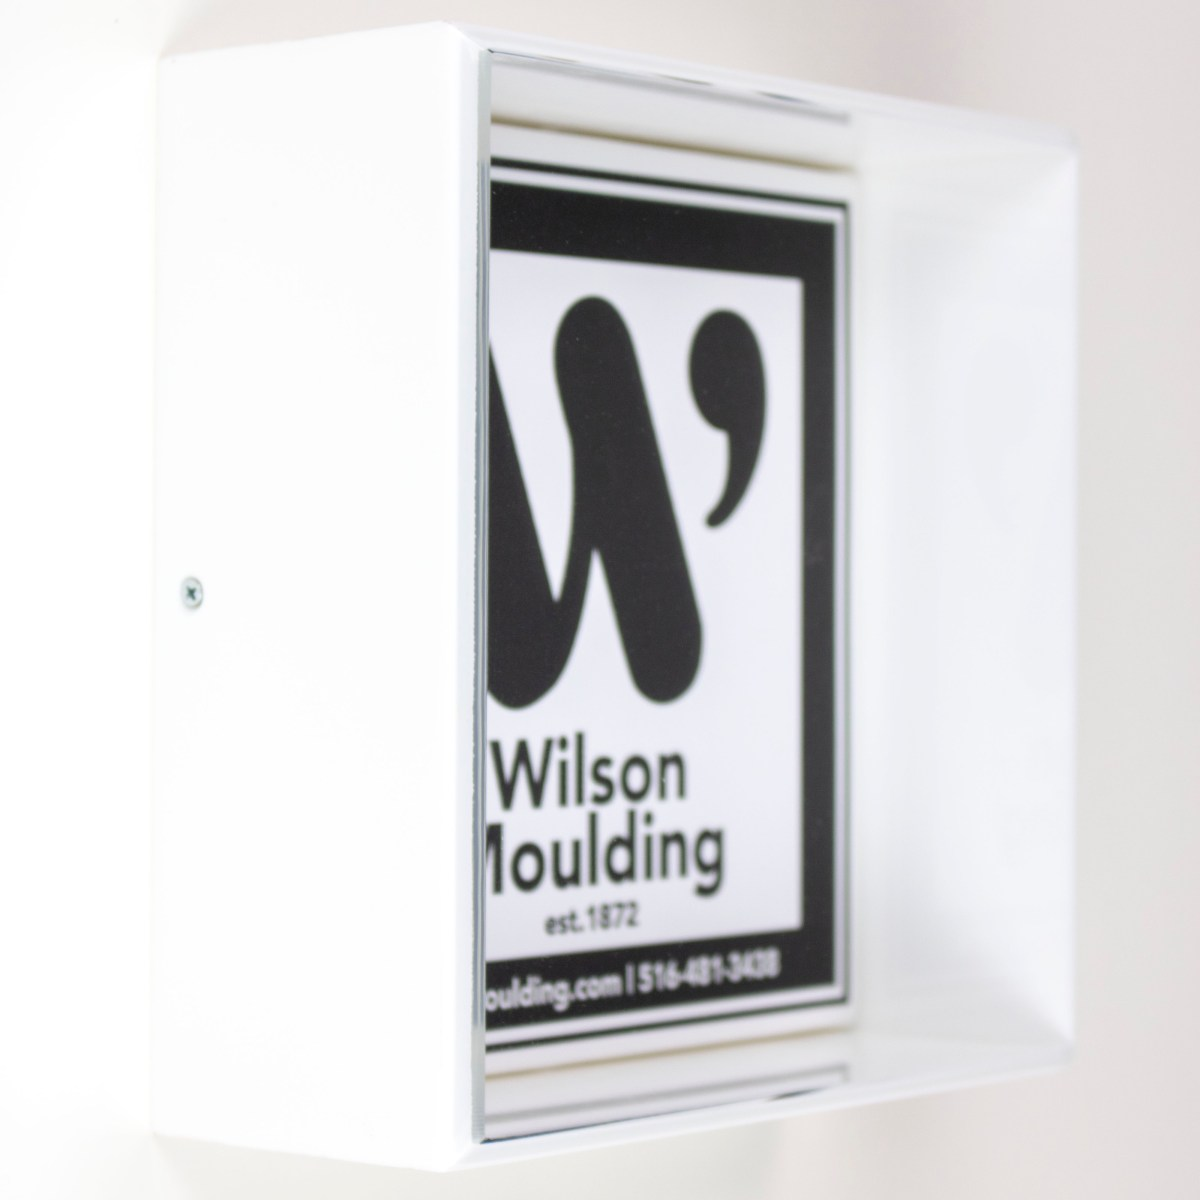 White Acrylic Box - Wilson Moulding